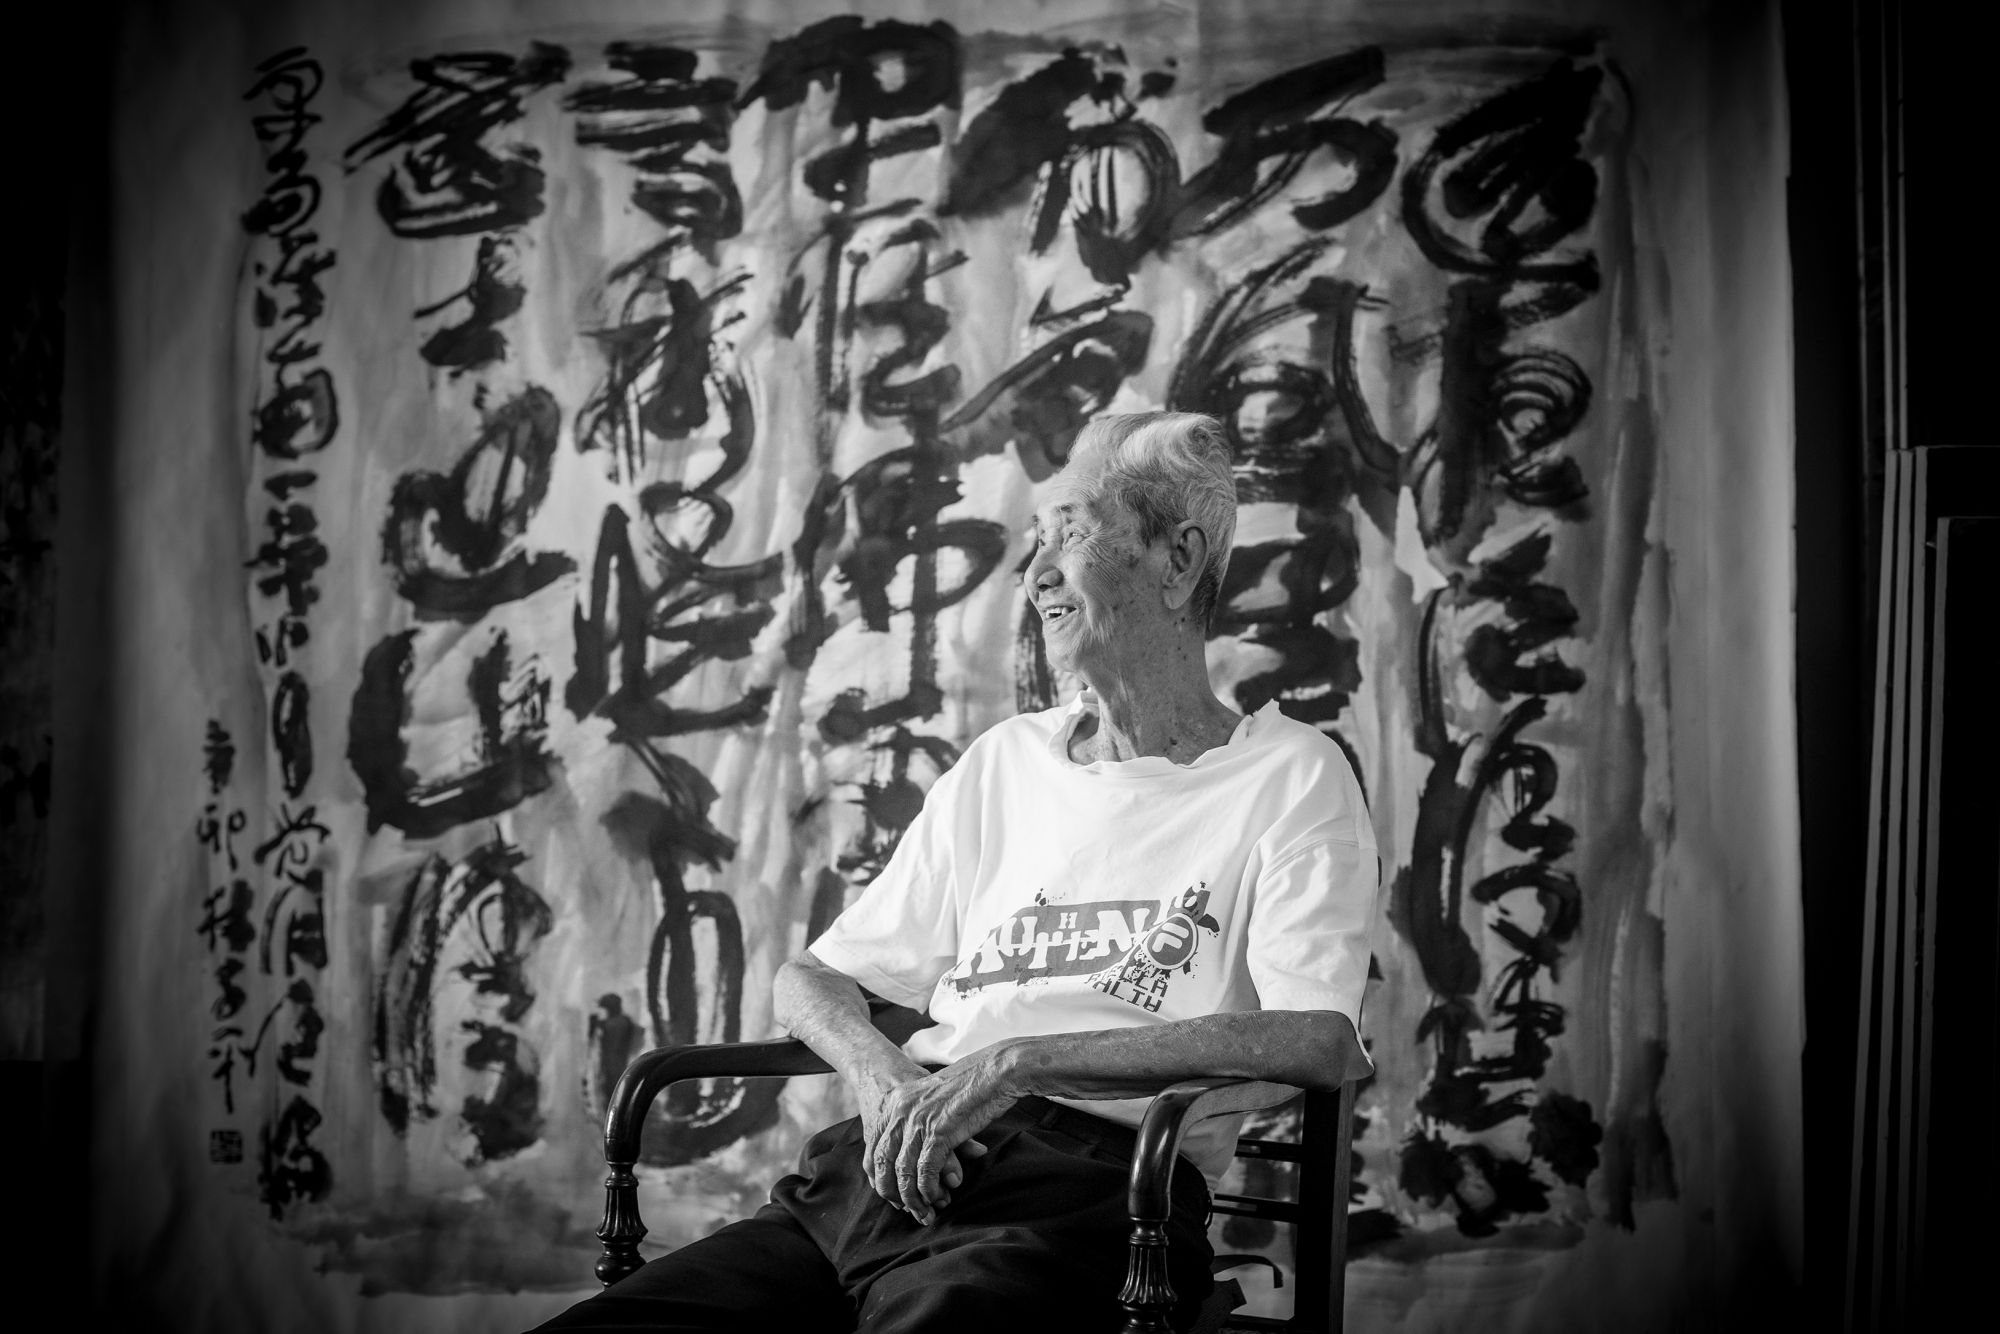 5 Minutes With... Lim Tze Peng, Singapore's Oldest Living Artist